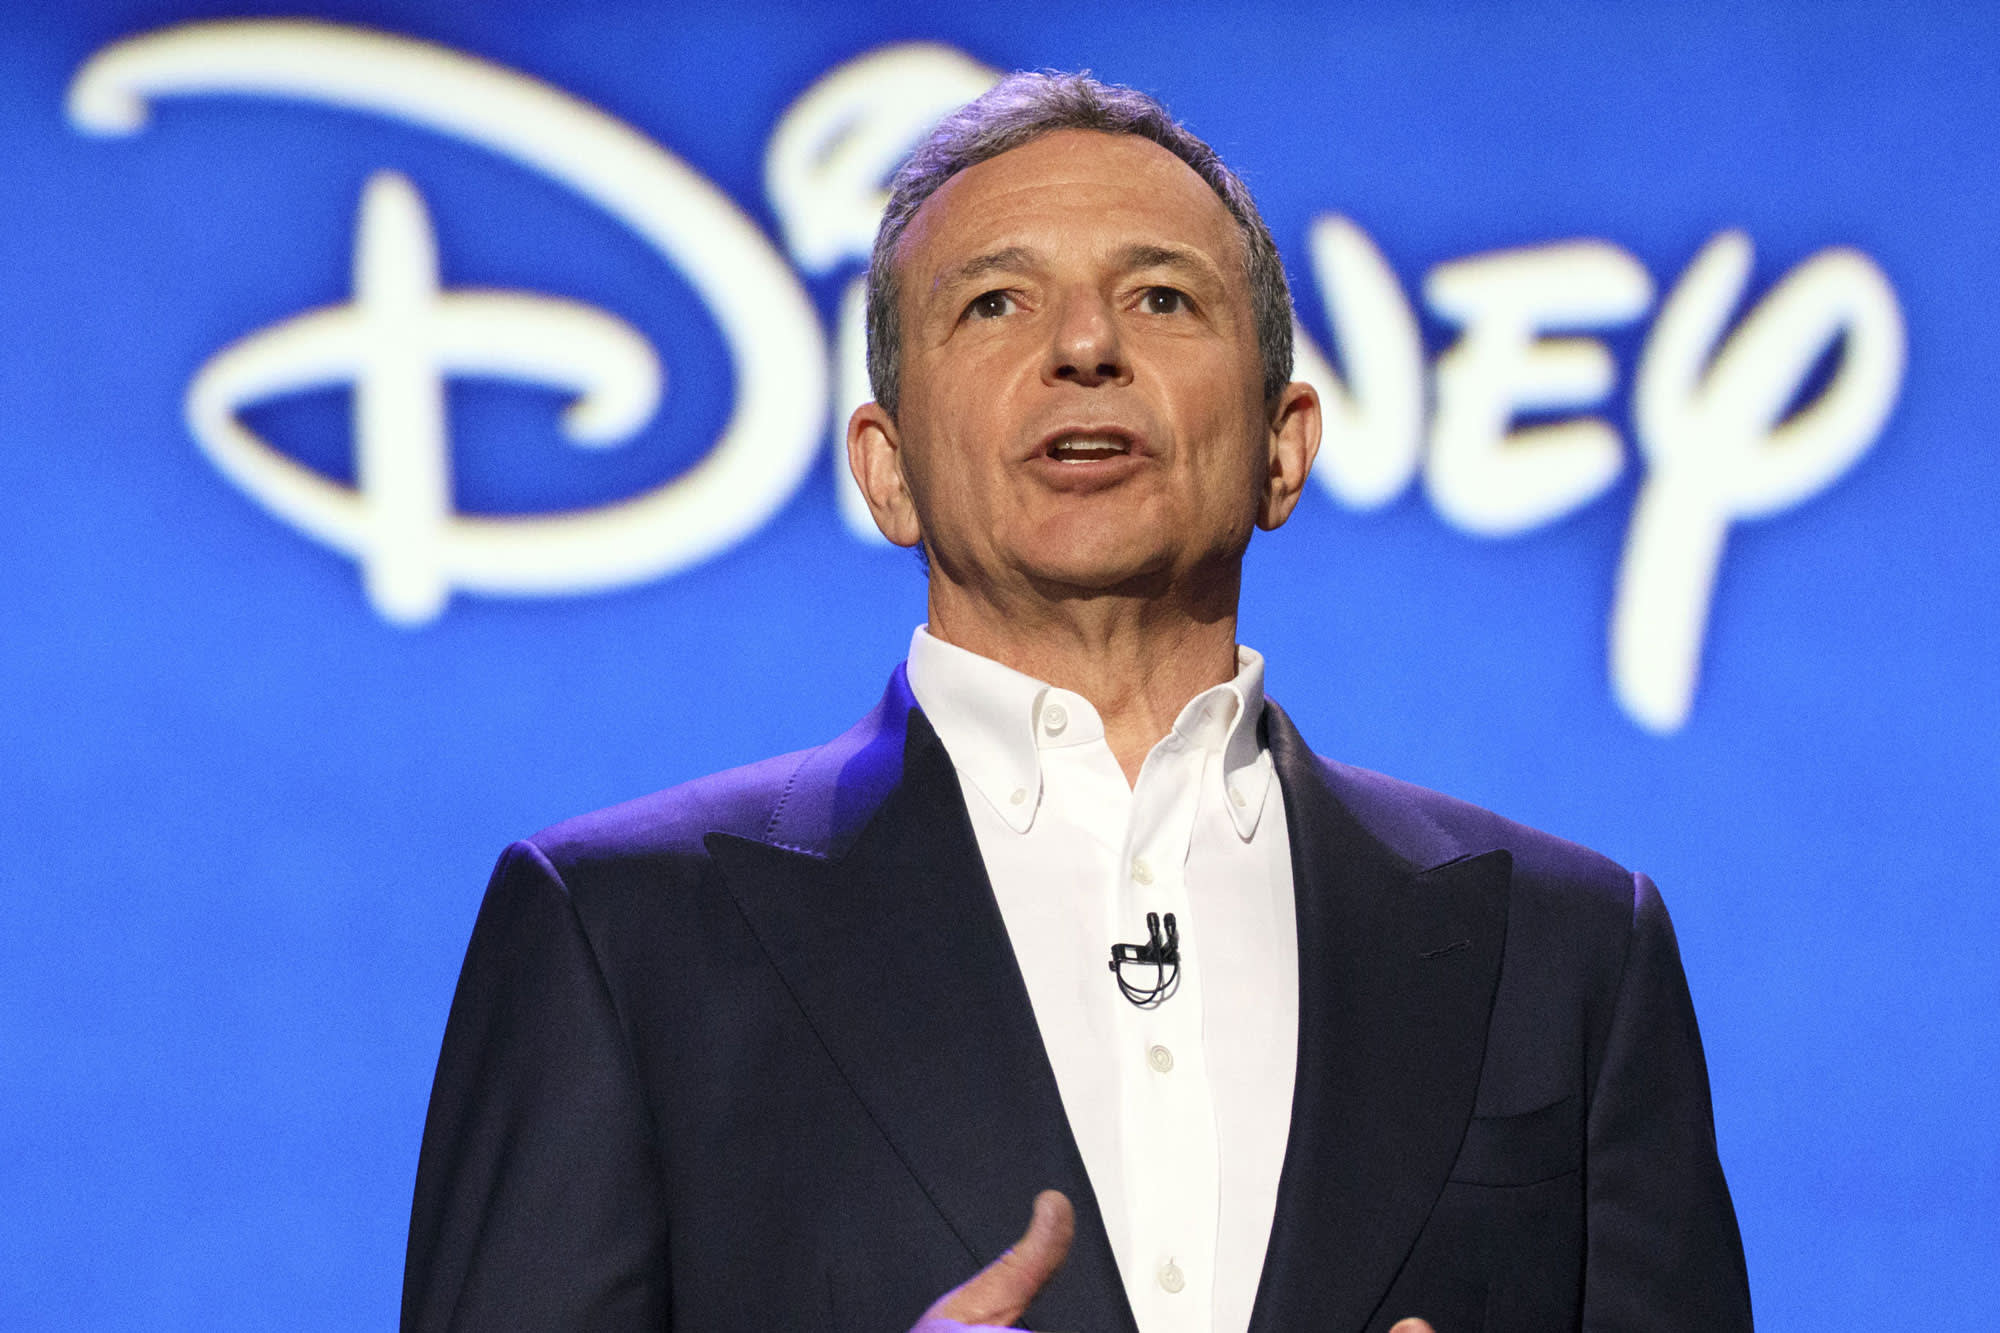 Cramer: Disney's stock 'is just an annuity stream'